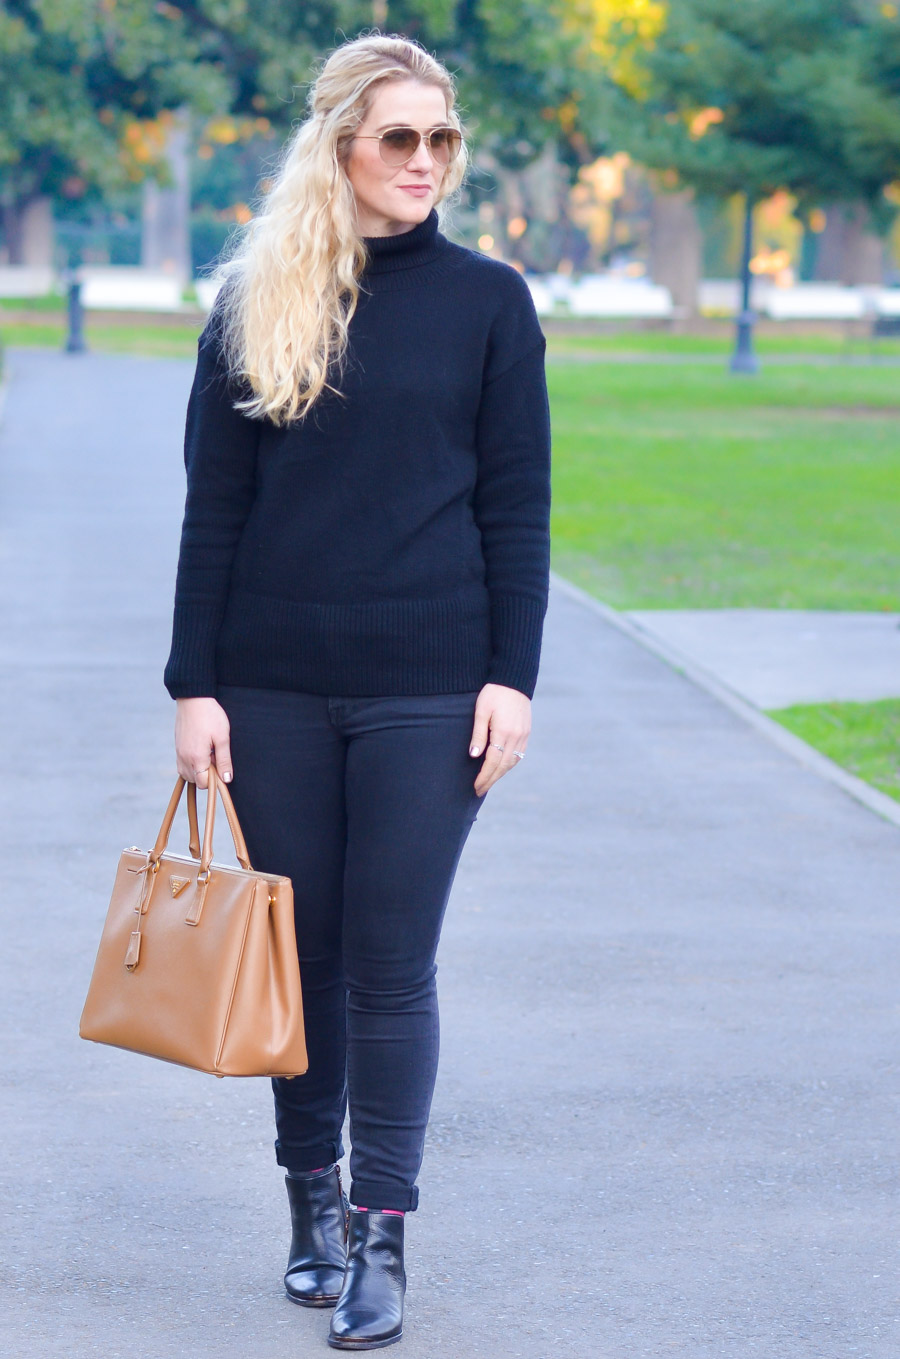 Ankle Boots + Skinny Jeans Cuffed Outfit for Women